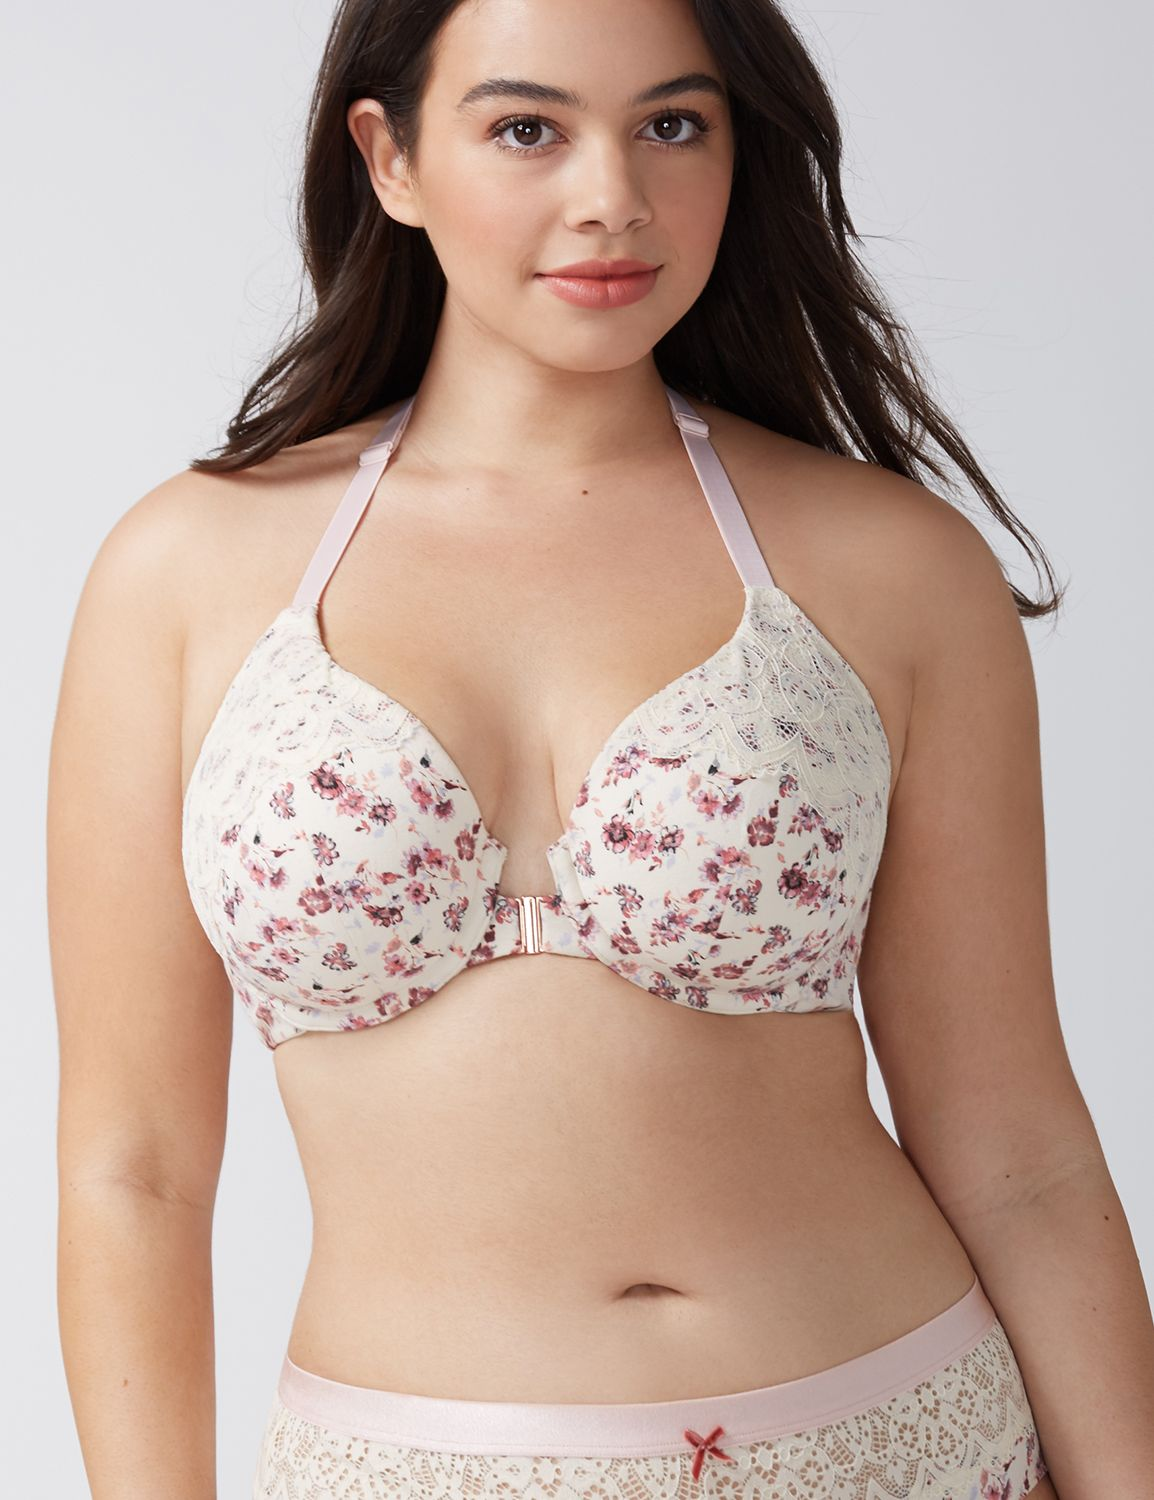 Lane Bryant Women's Cotton Lightly Lined T-Shirt Bra 38F Delicate Floral